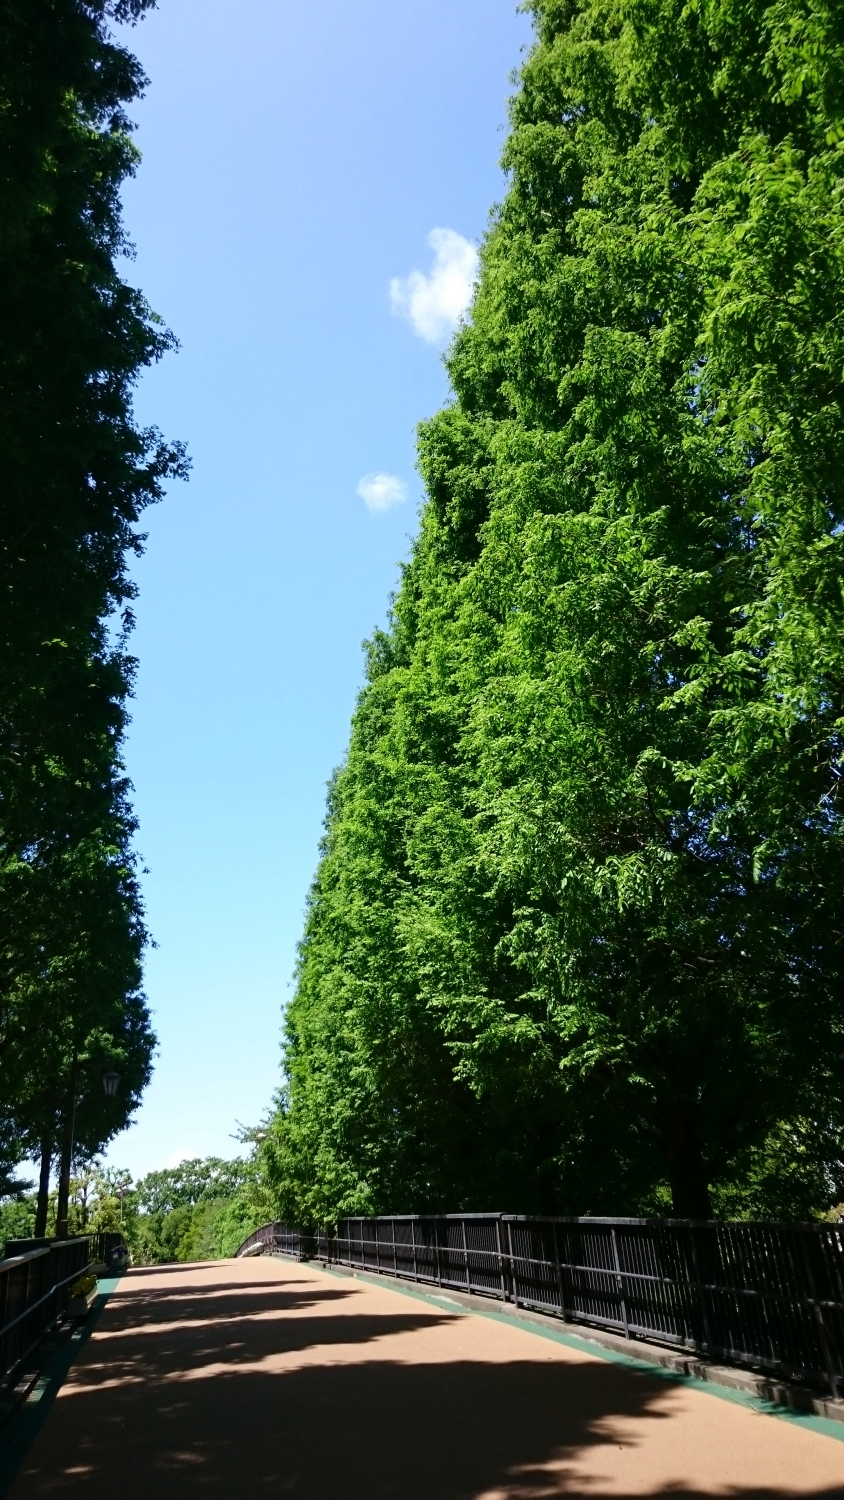 The fresh green of metasequoia